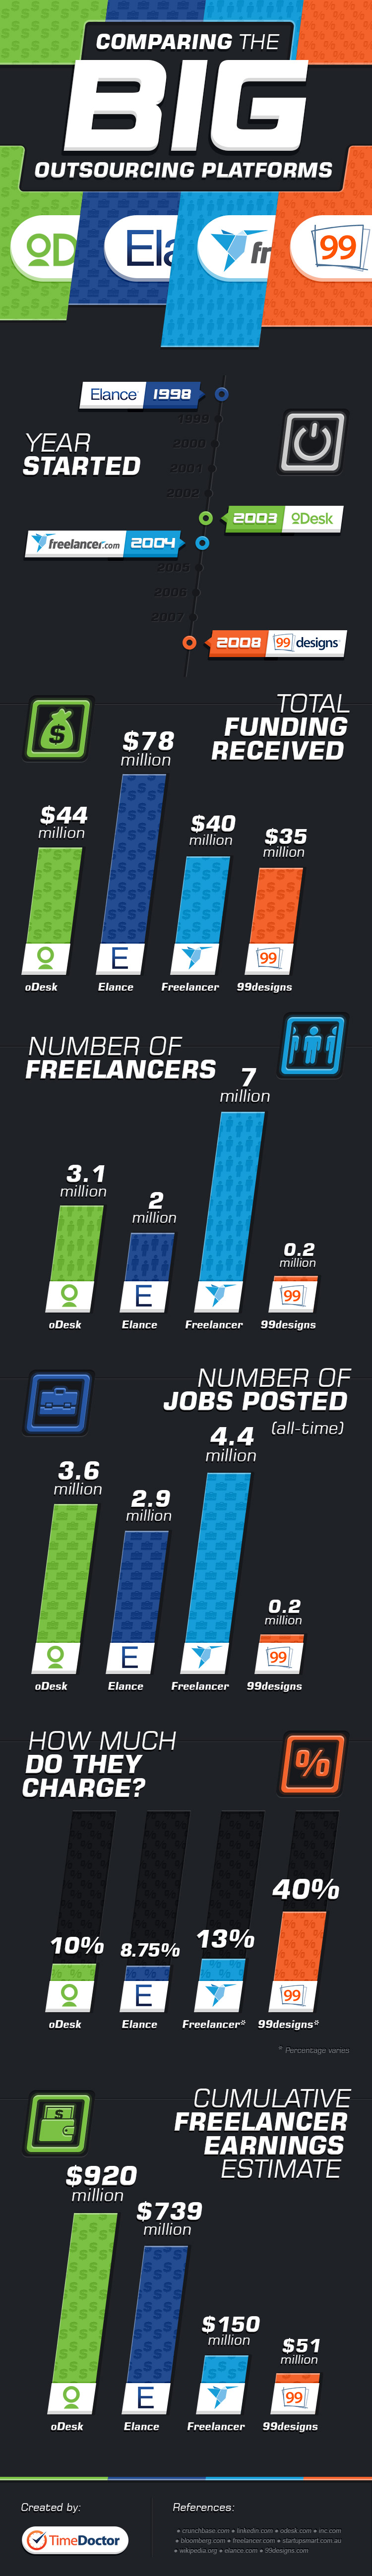 oDesk vs Elance vs Freelancer and 99designs - Infographic